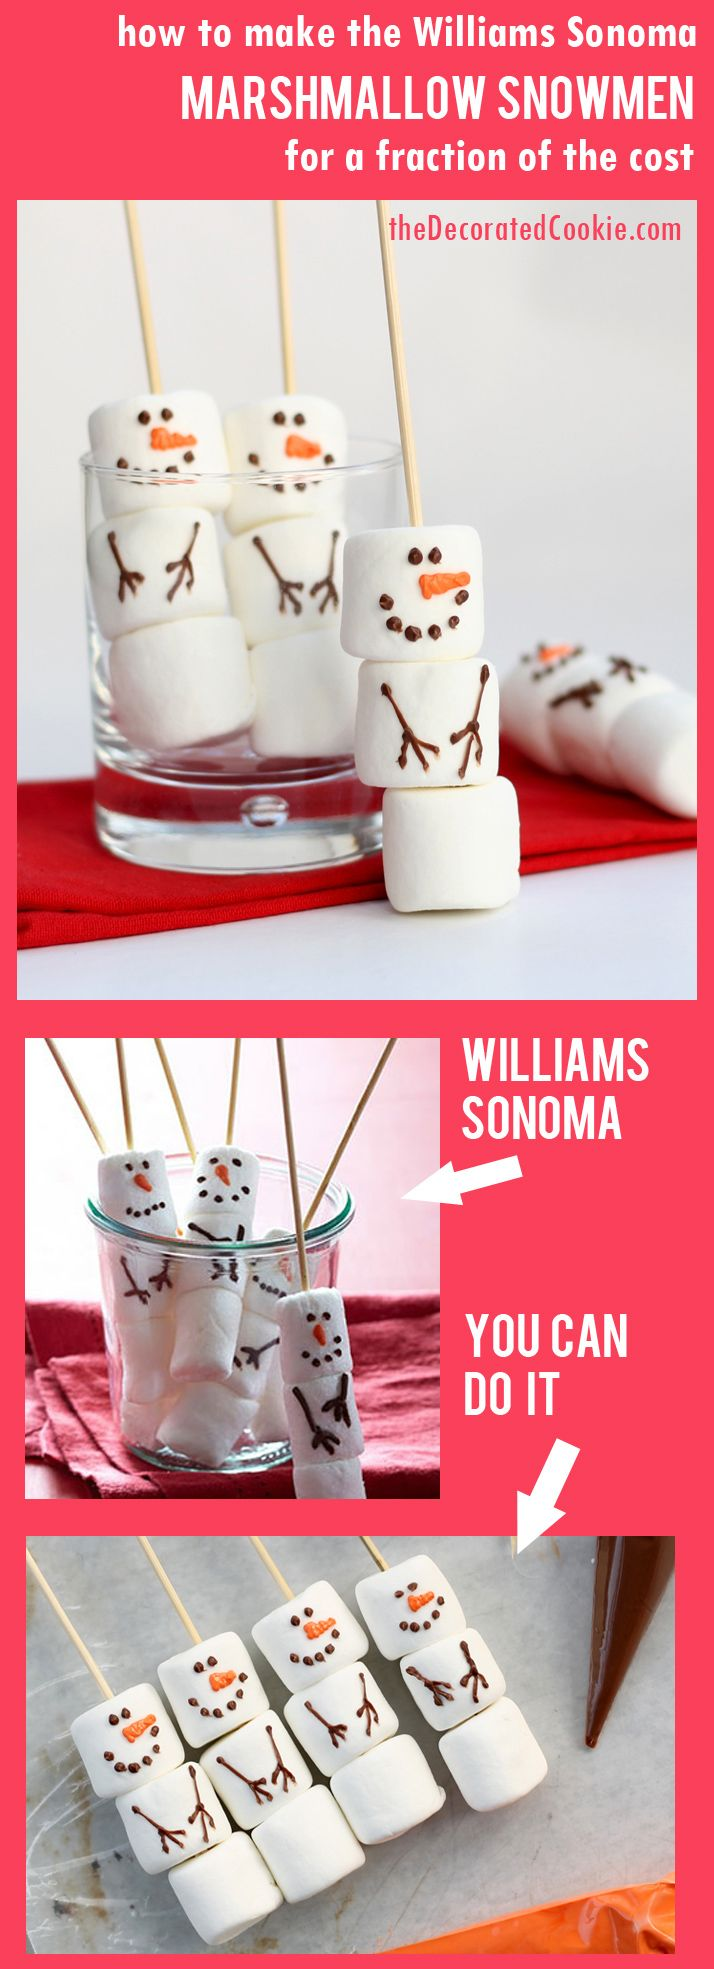 Deser williams pictures to pin on pinterest - Diy Marshmallow Snowmen Stirrers From The Williams Sonoma Catalog